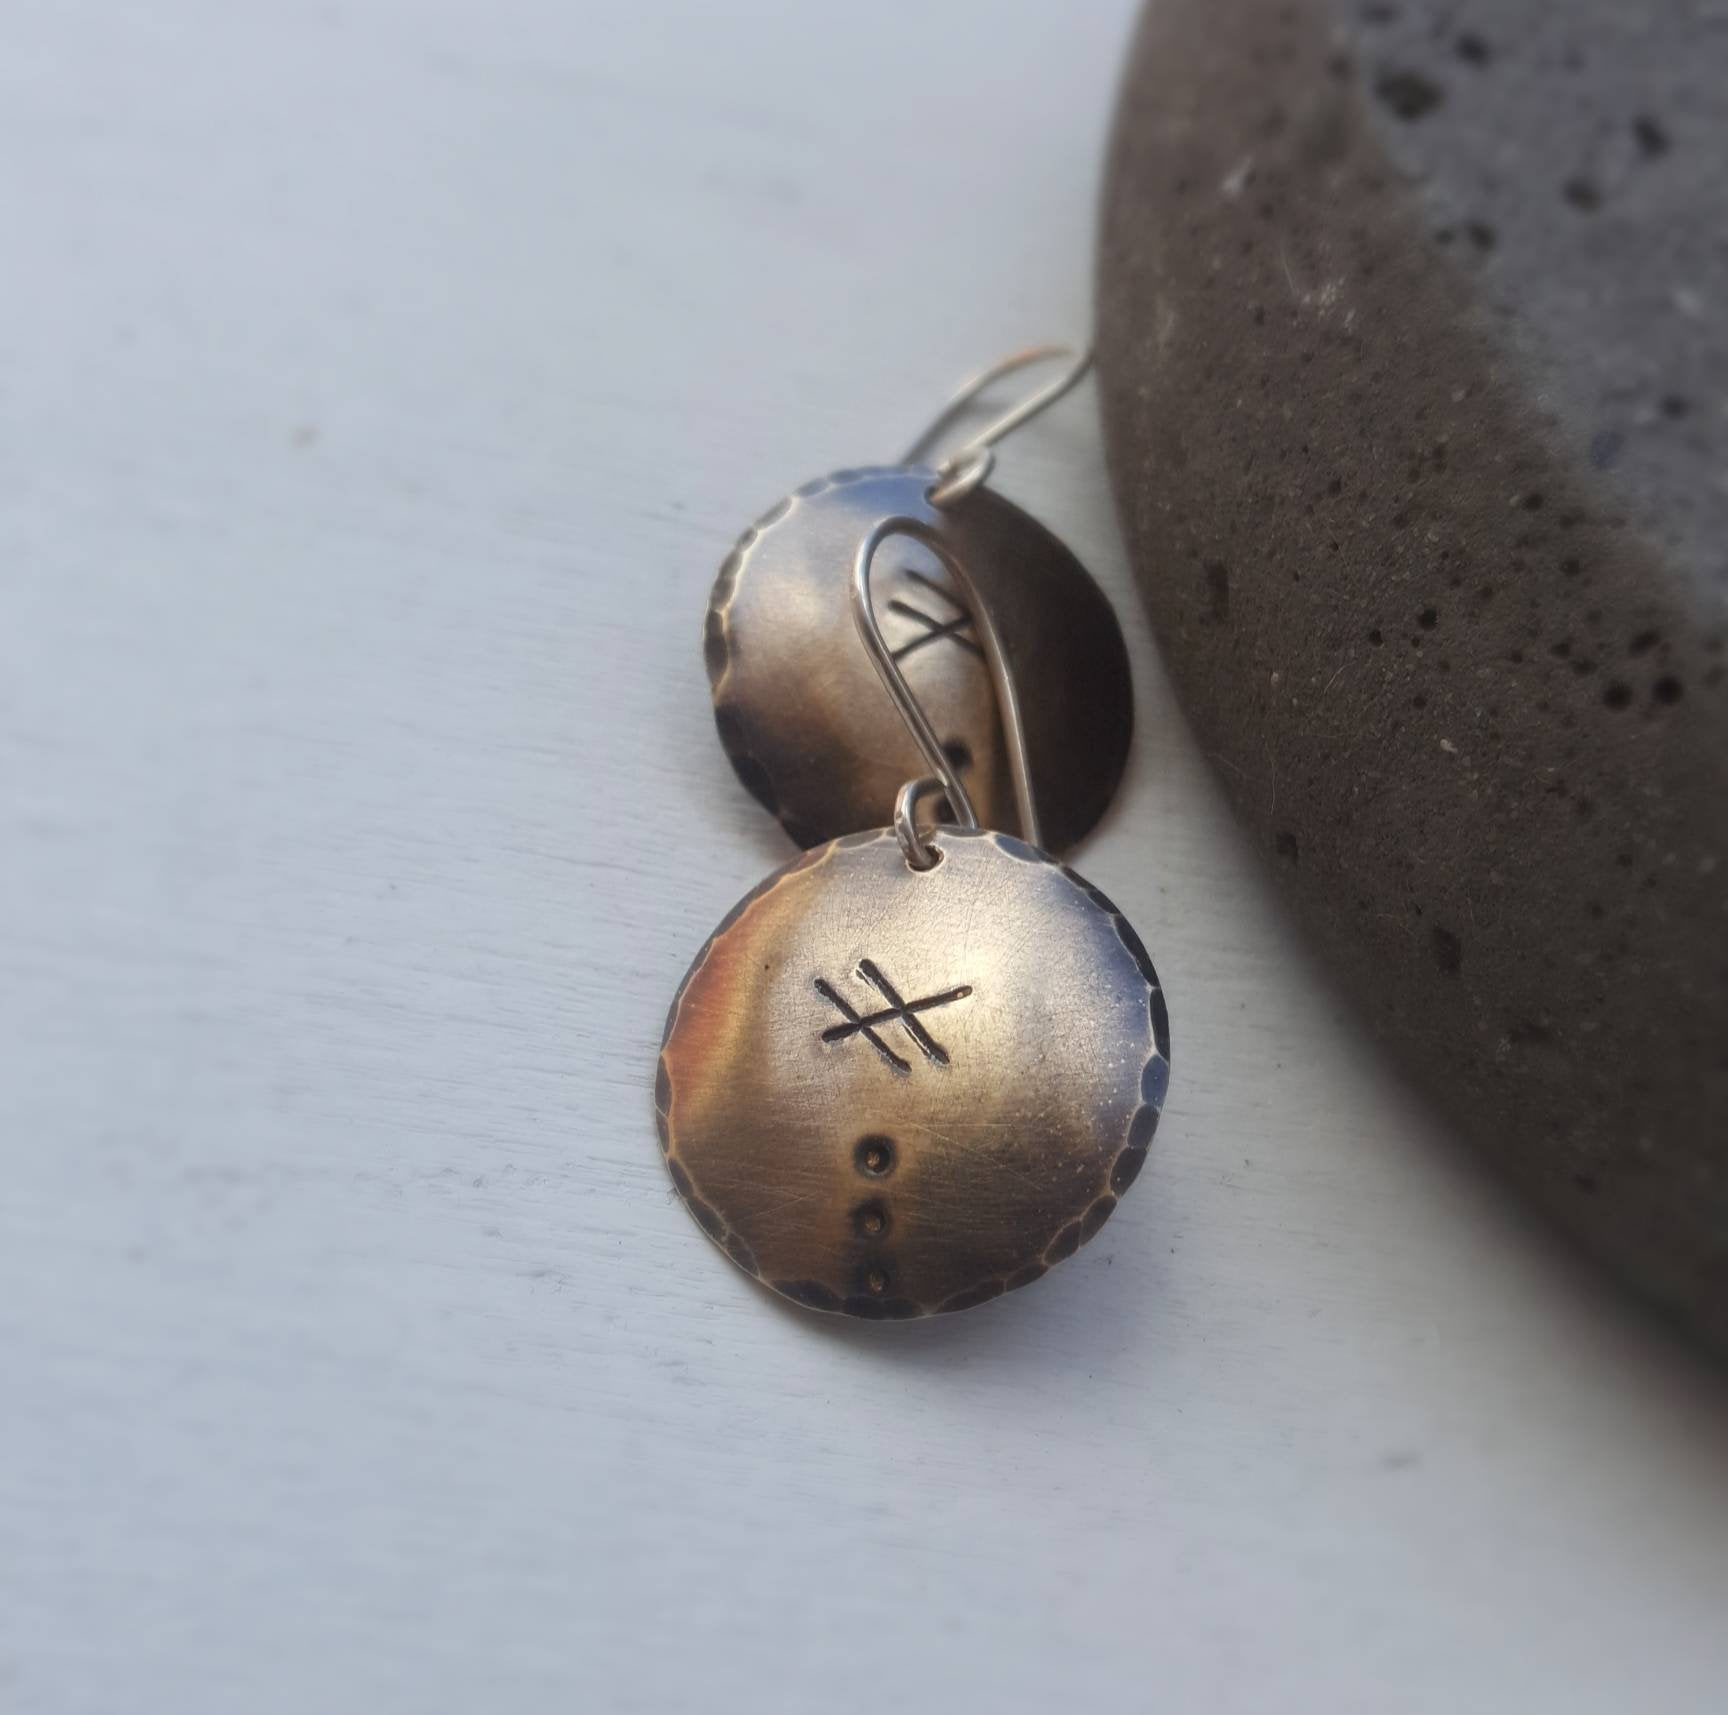 Brass Wayward Earrings - Boho disc earrings